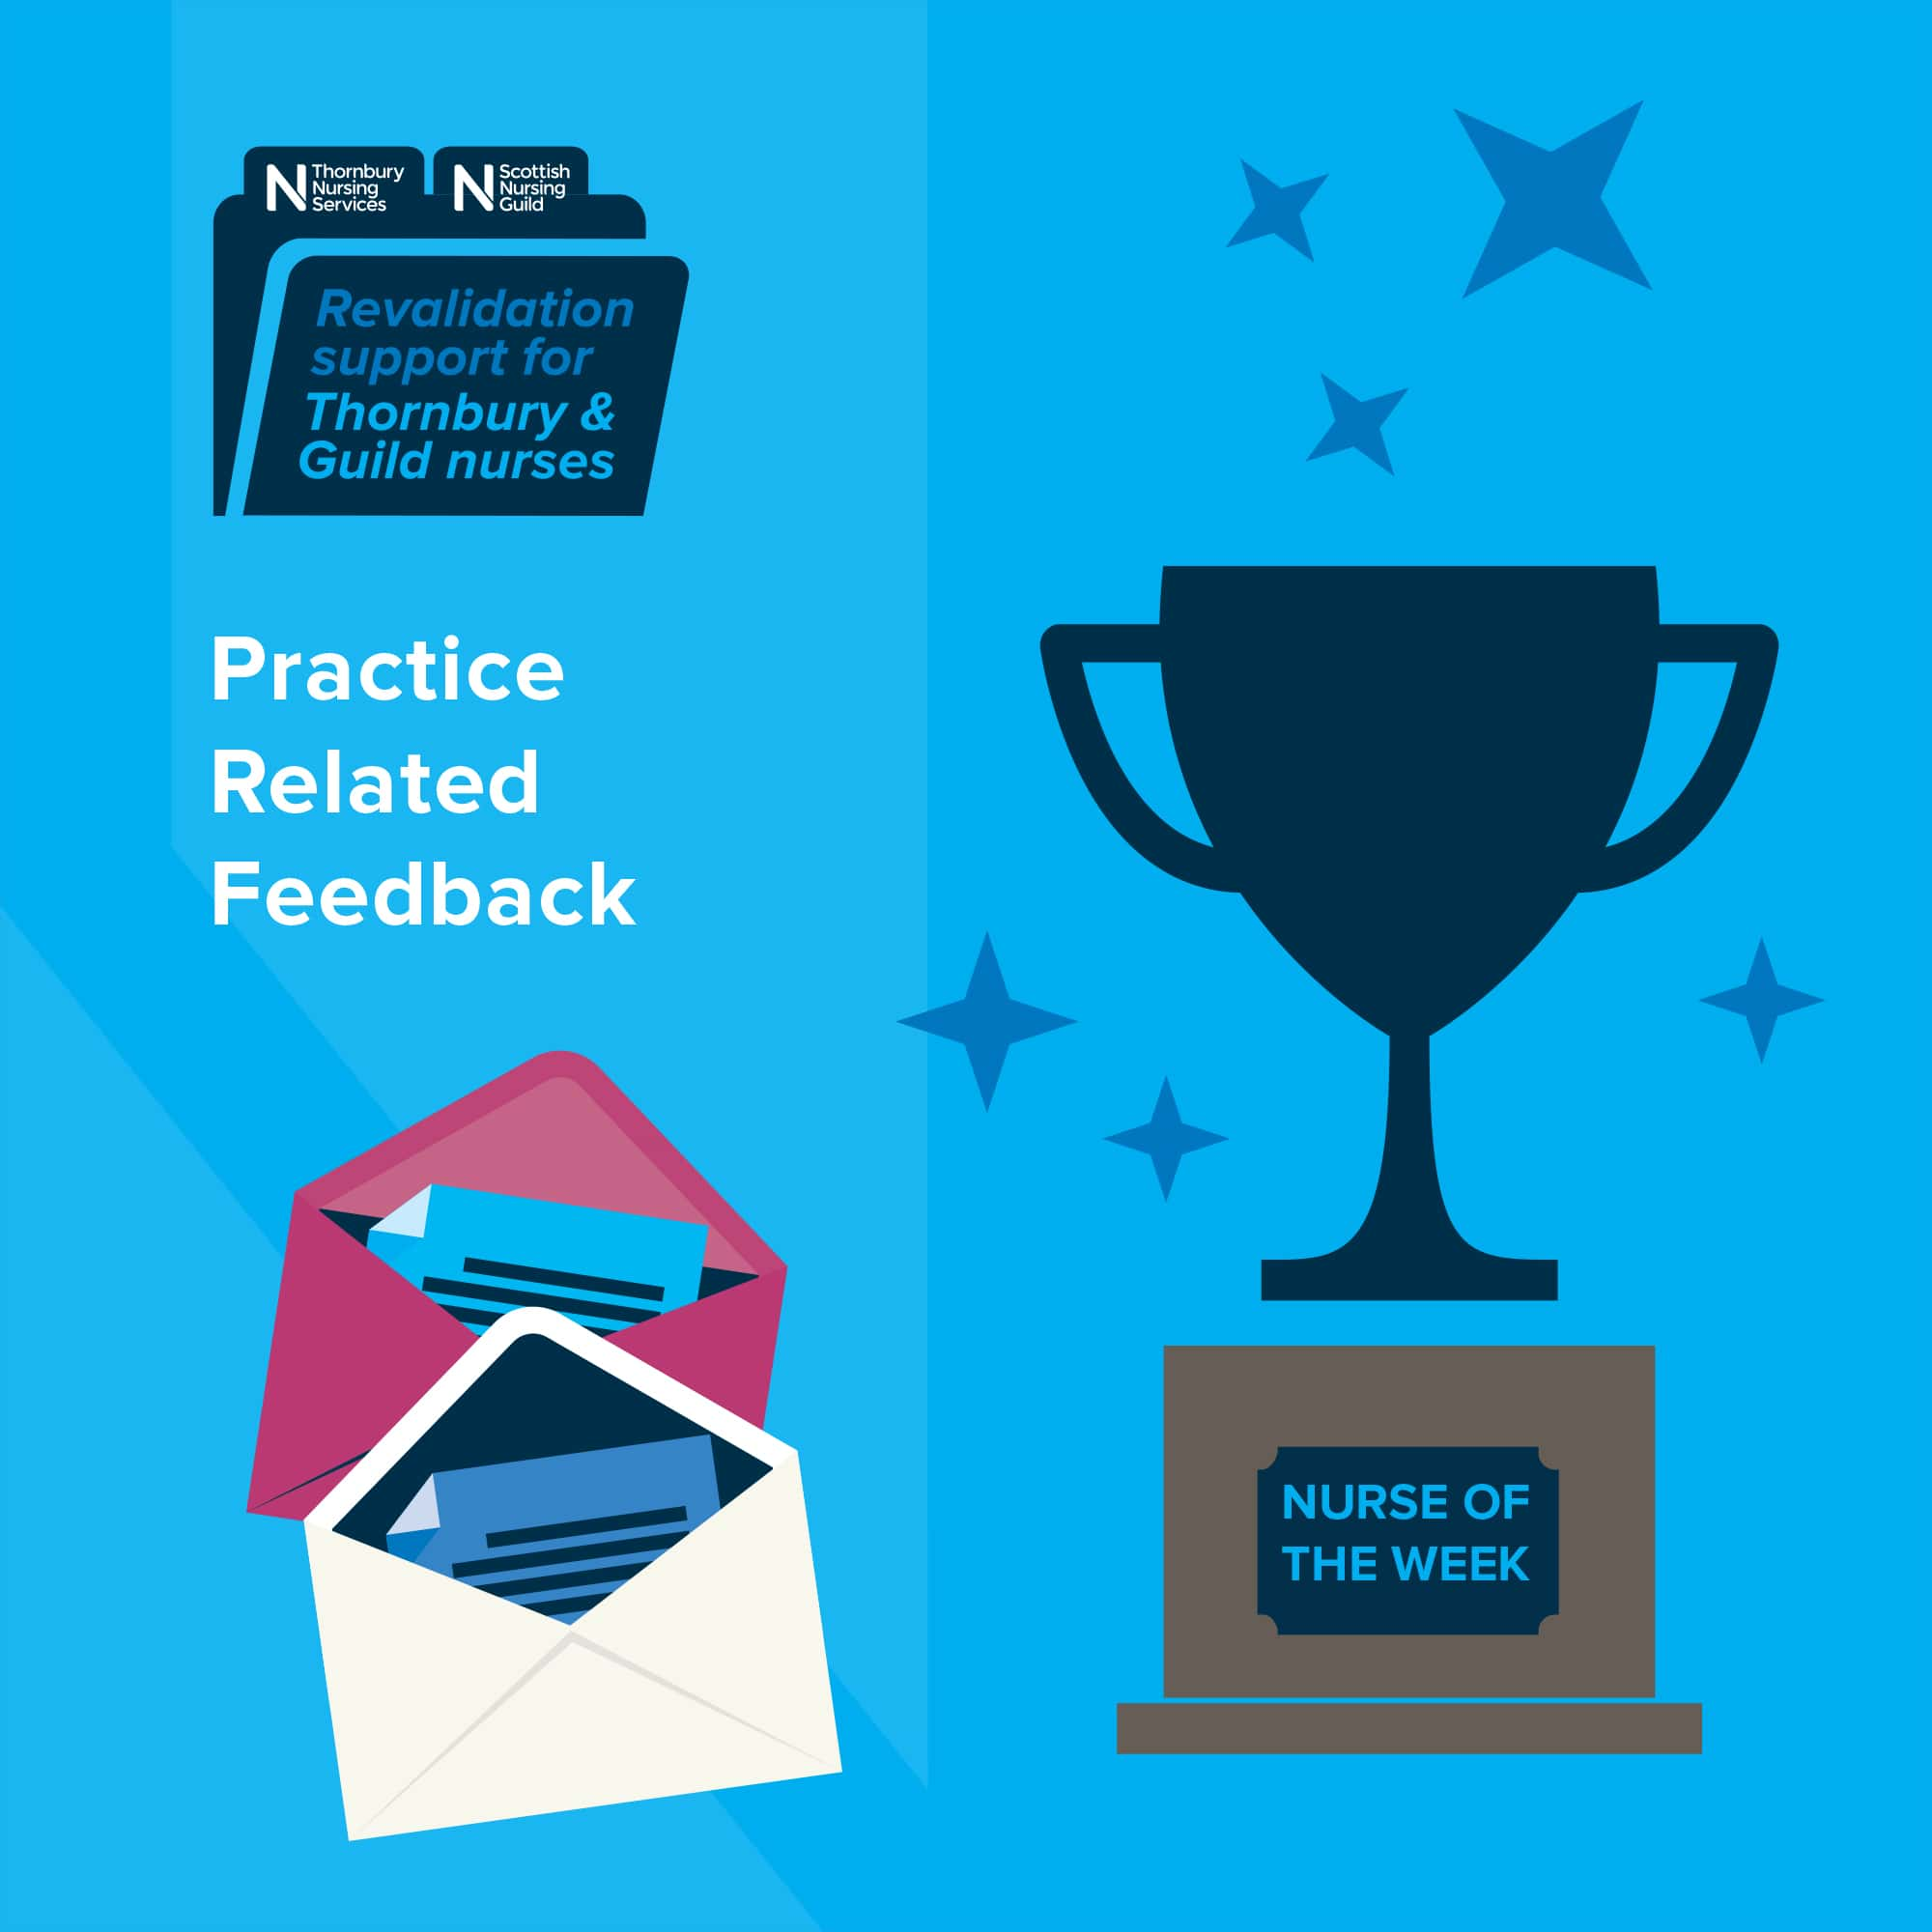 Practice related feedback - revalidation support